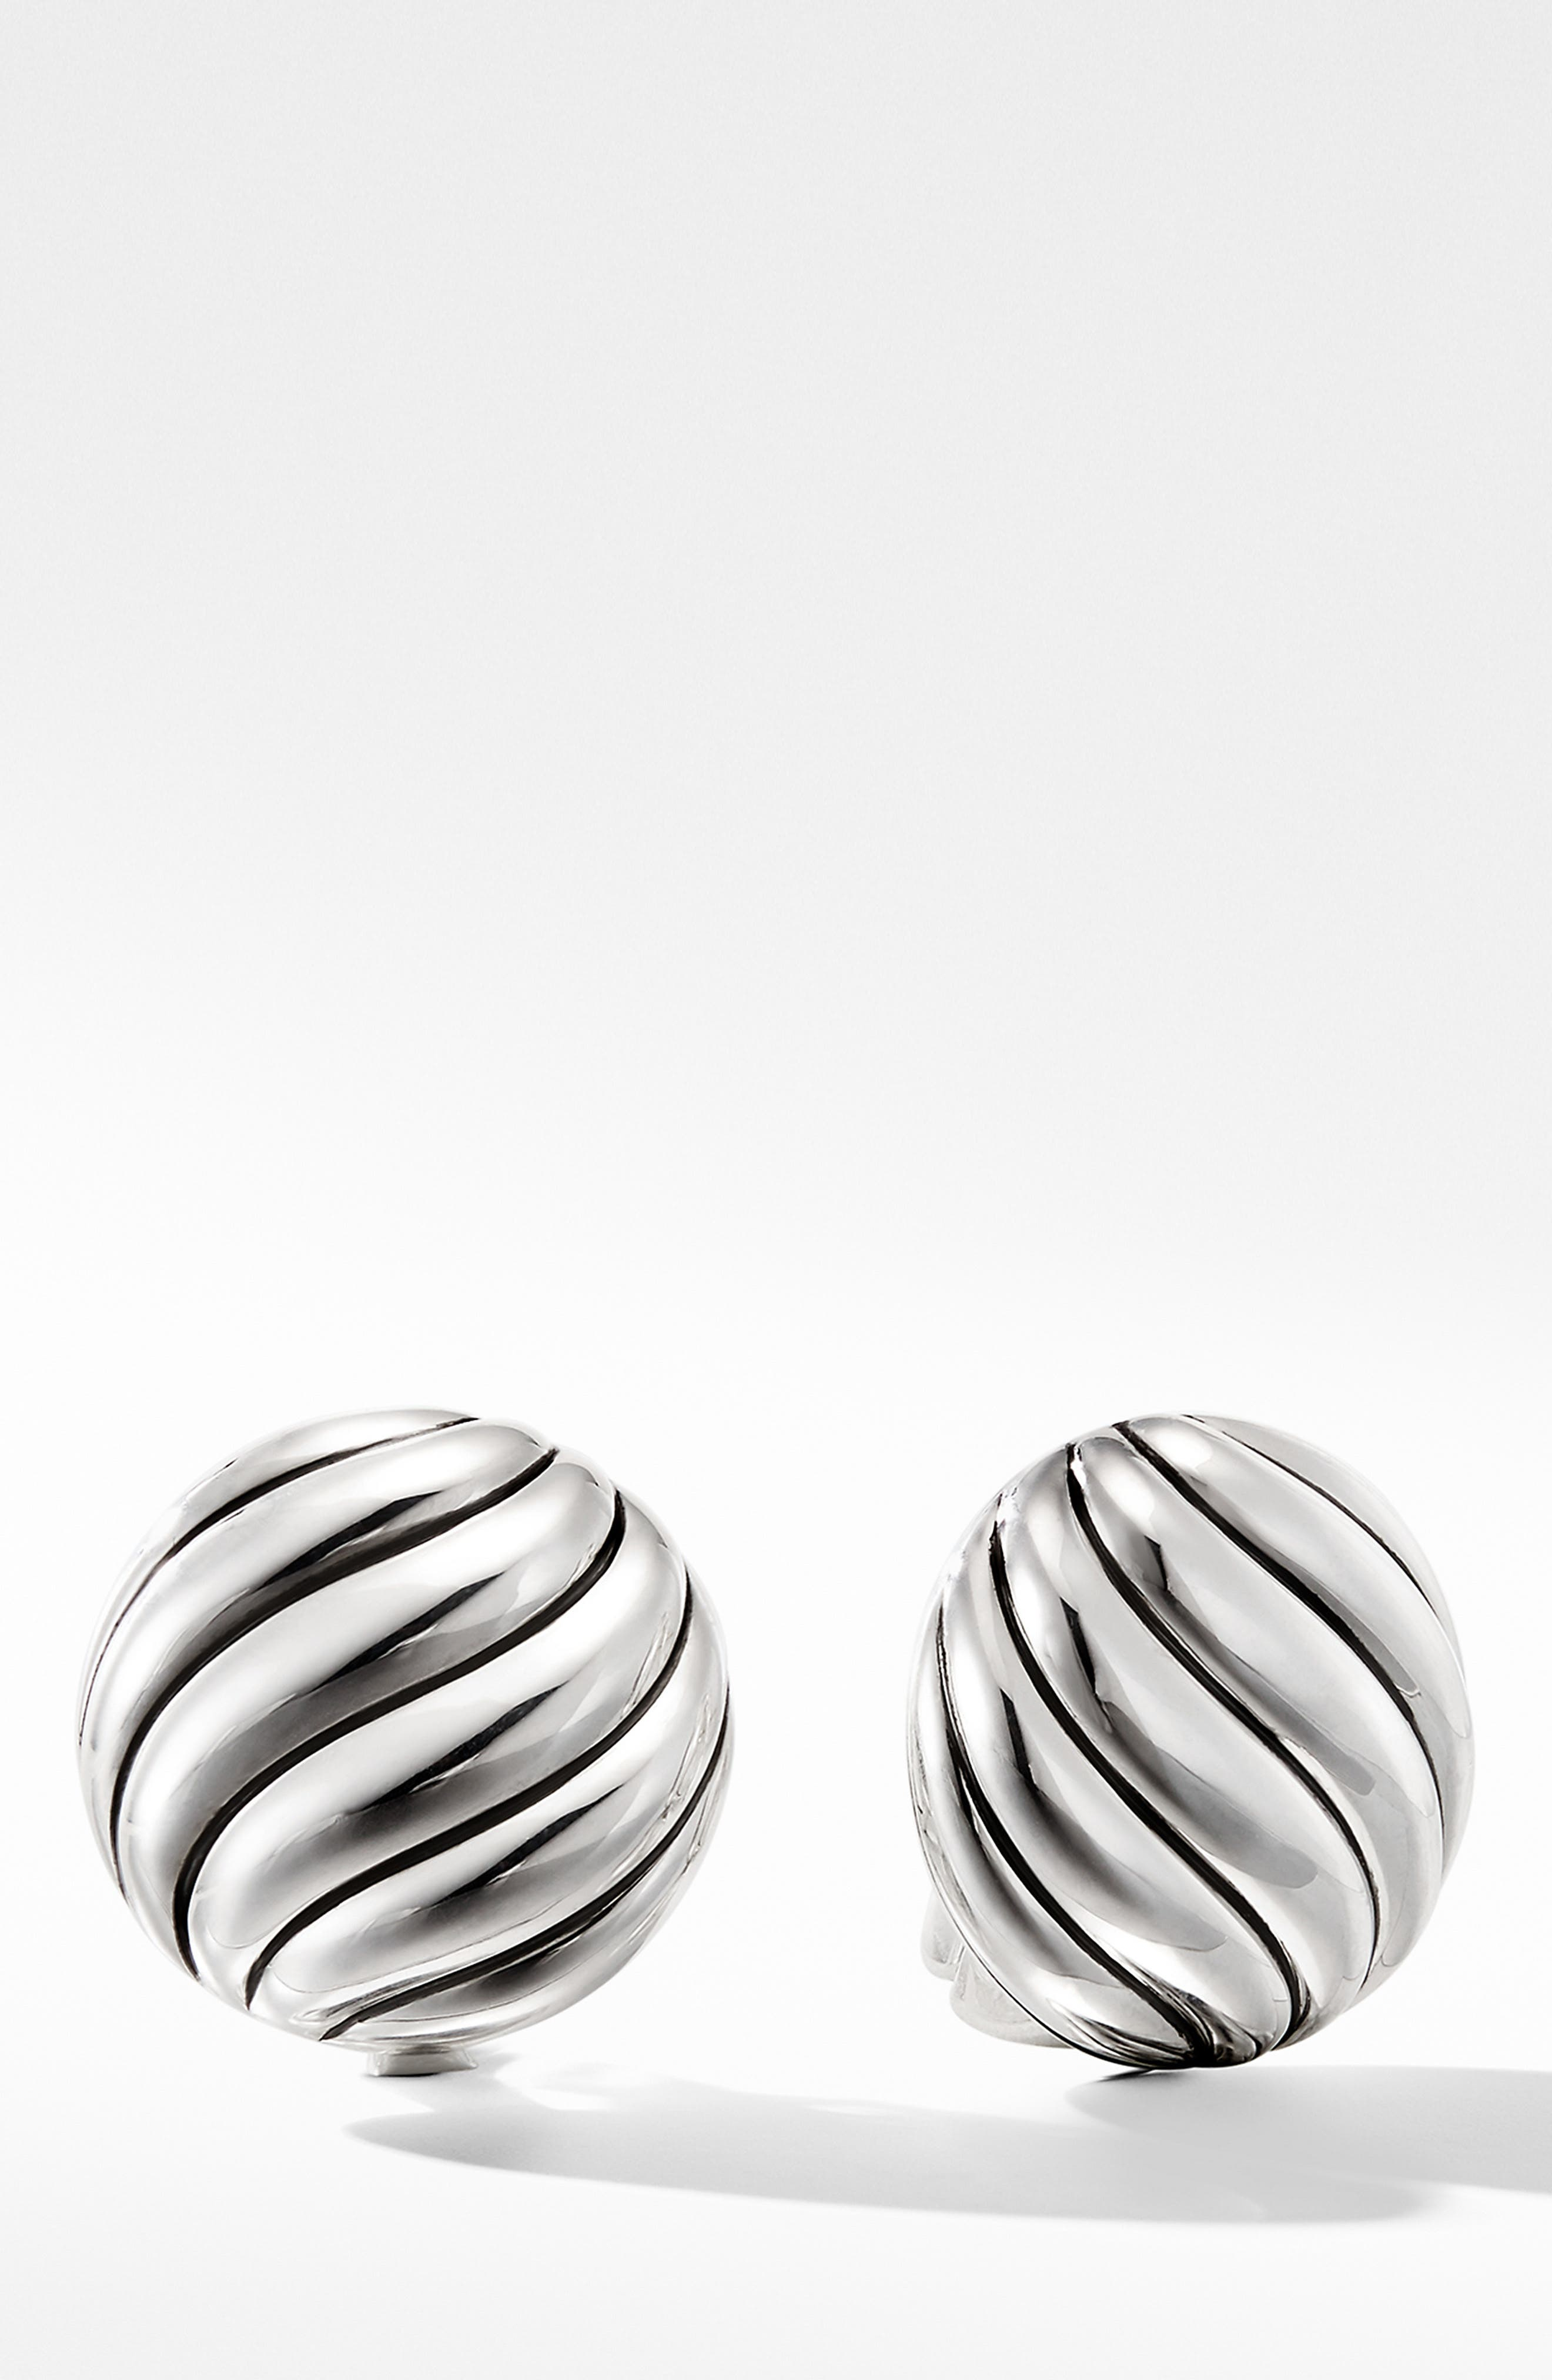 DAVID YURMAN Cable Stud Earrings in Sterling Silver, Main, color, SILVER